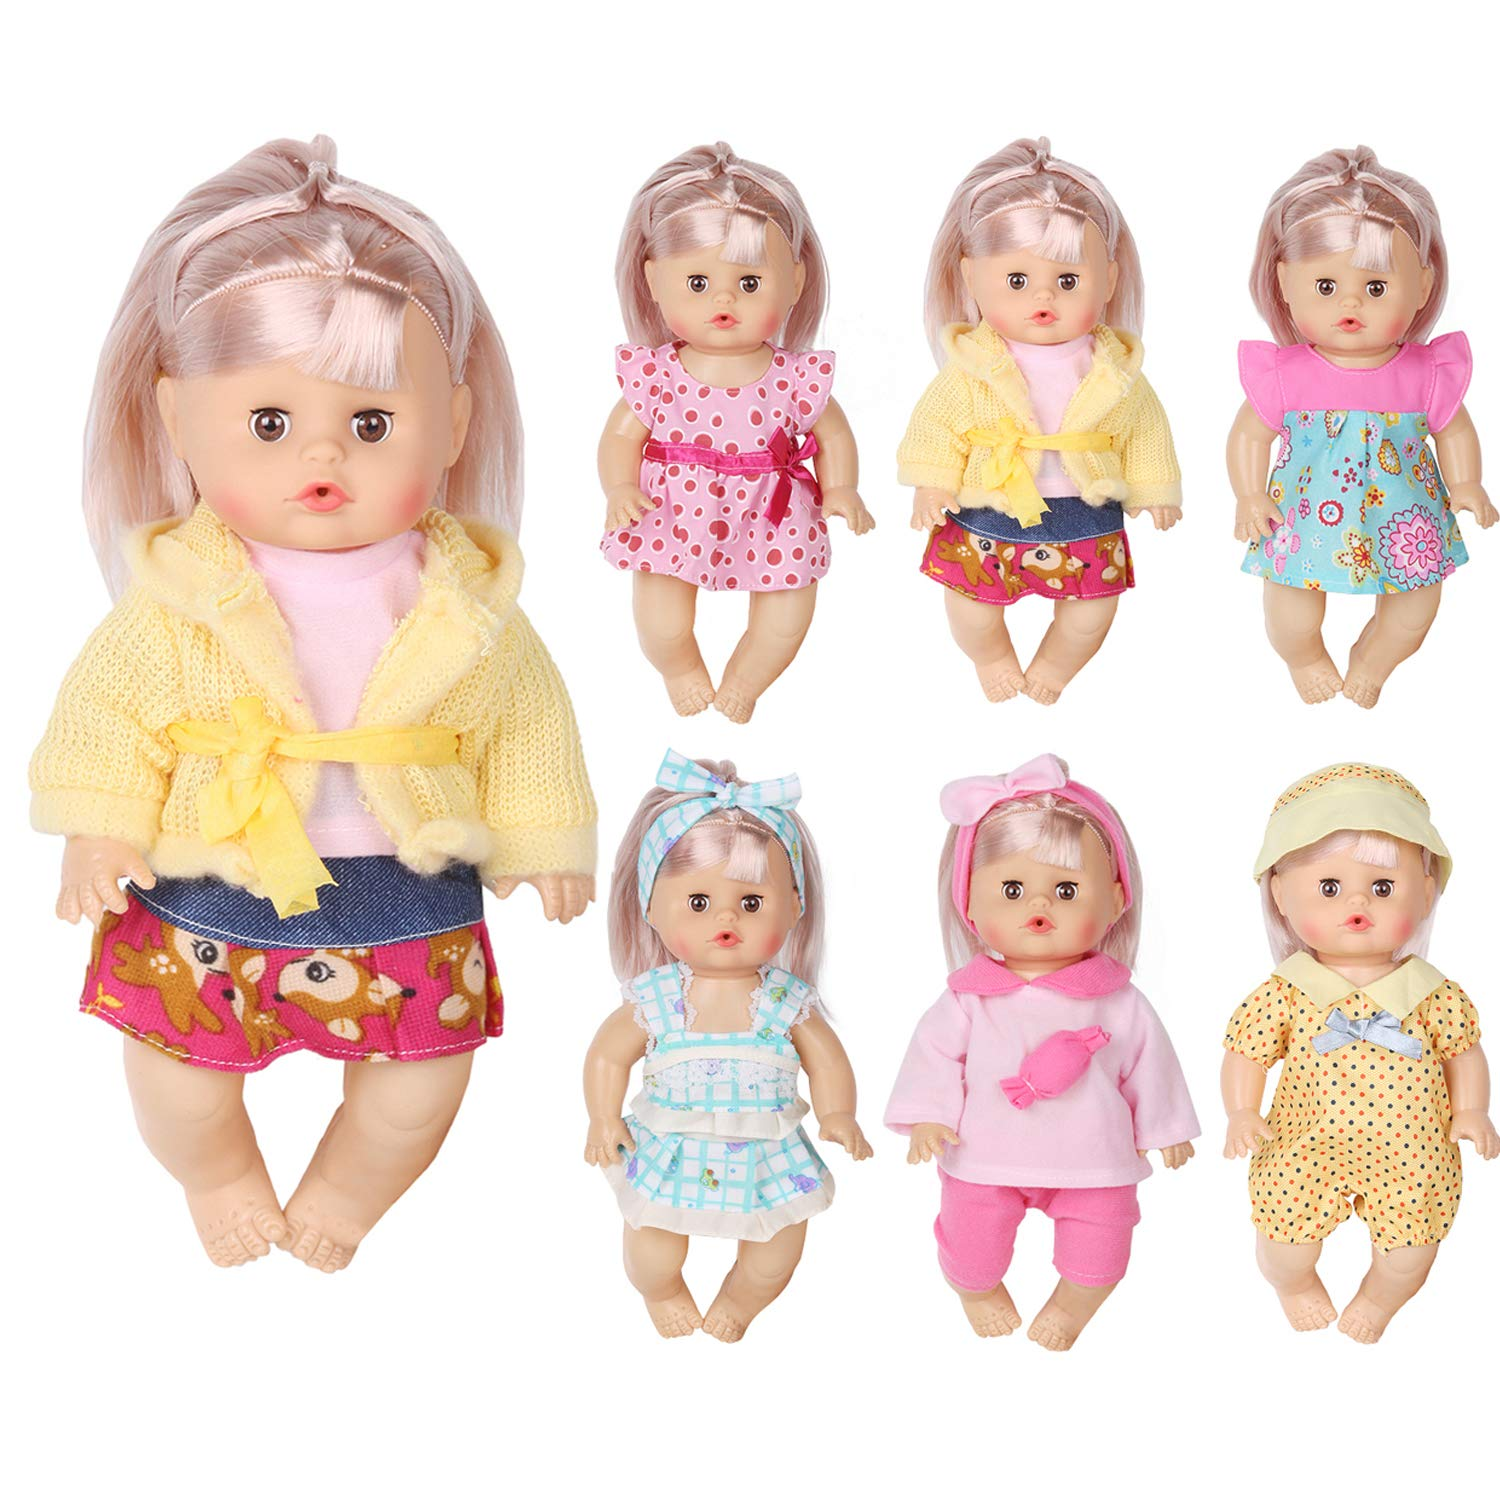 Huang Cheng Toys Set of 6 Doll Clothes for 12 Inch Doll Dress Clothes Outfits Costumes Gown Doll Accessories Clothing Handmade China